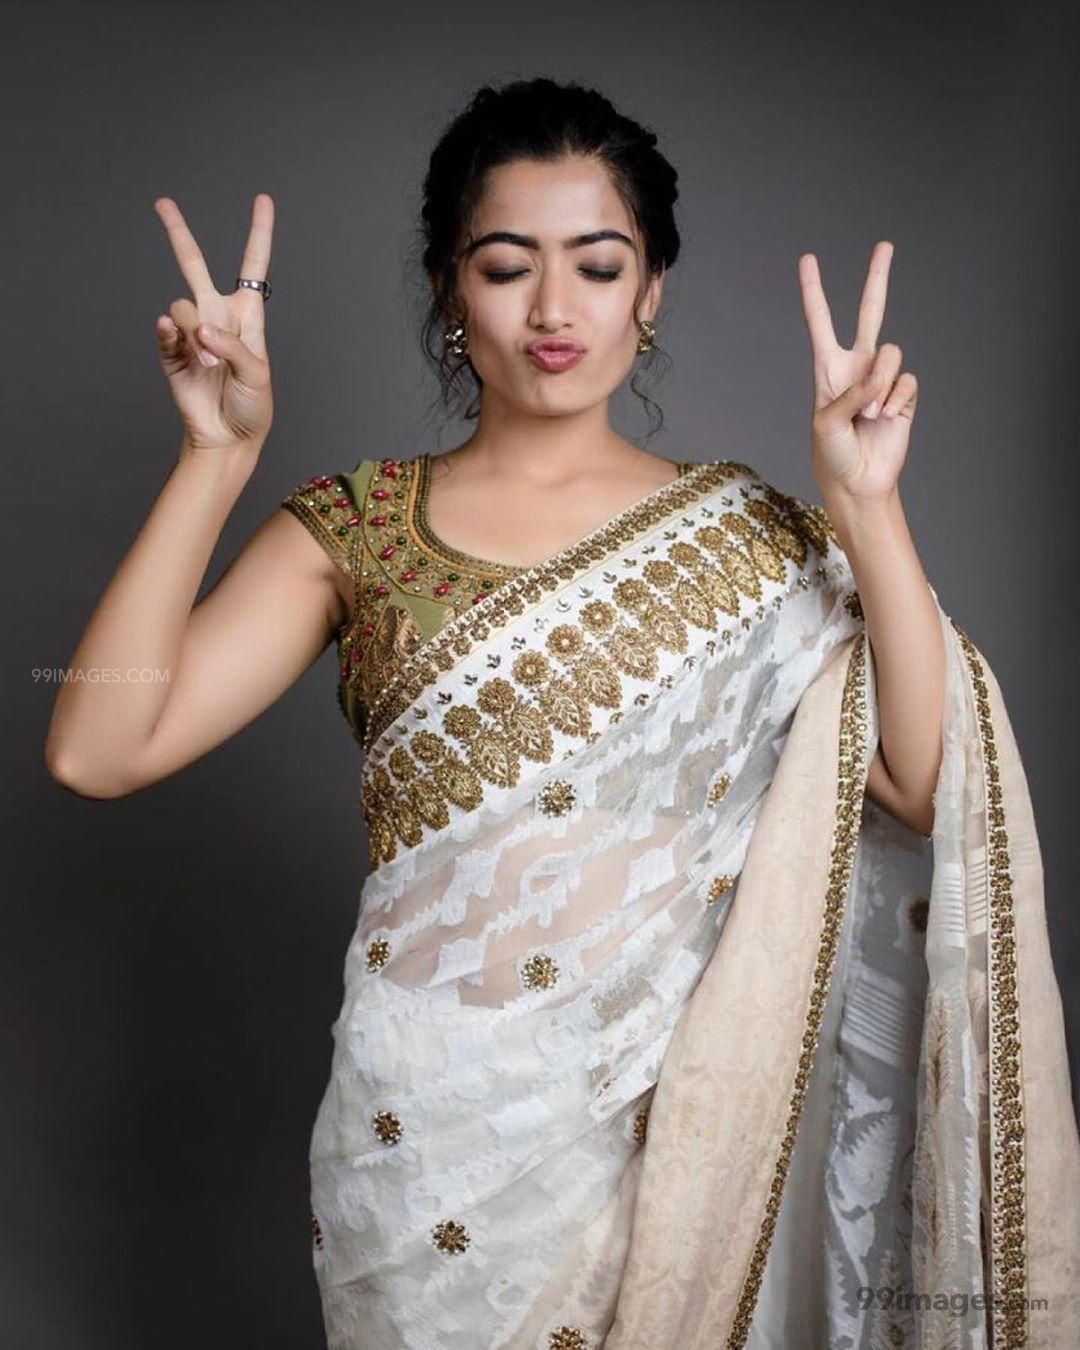 Rashmika Mandanna Beautiful HD Photos & Mobile Wallpapers HD (Android/iPhone) (1080p) (177436) - Rashmika Mandanna